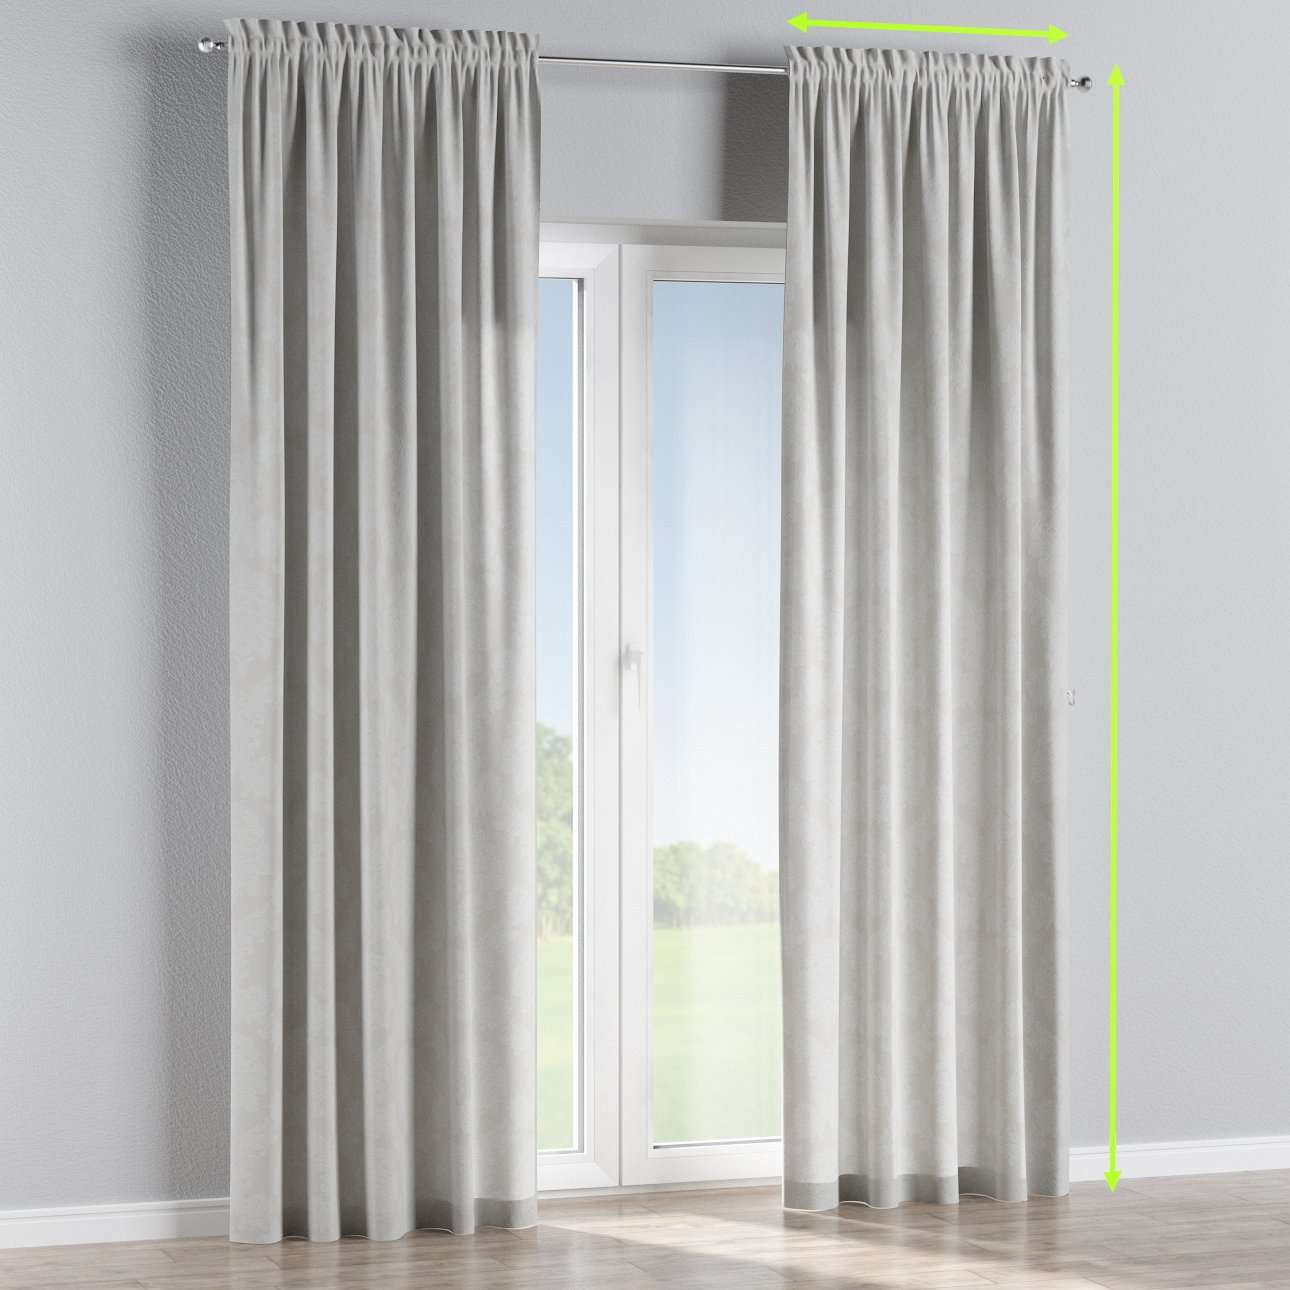 Slot and frill lined curtains in collection Damasco, fabric: 613-81